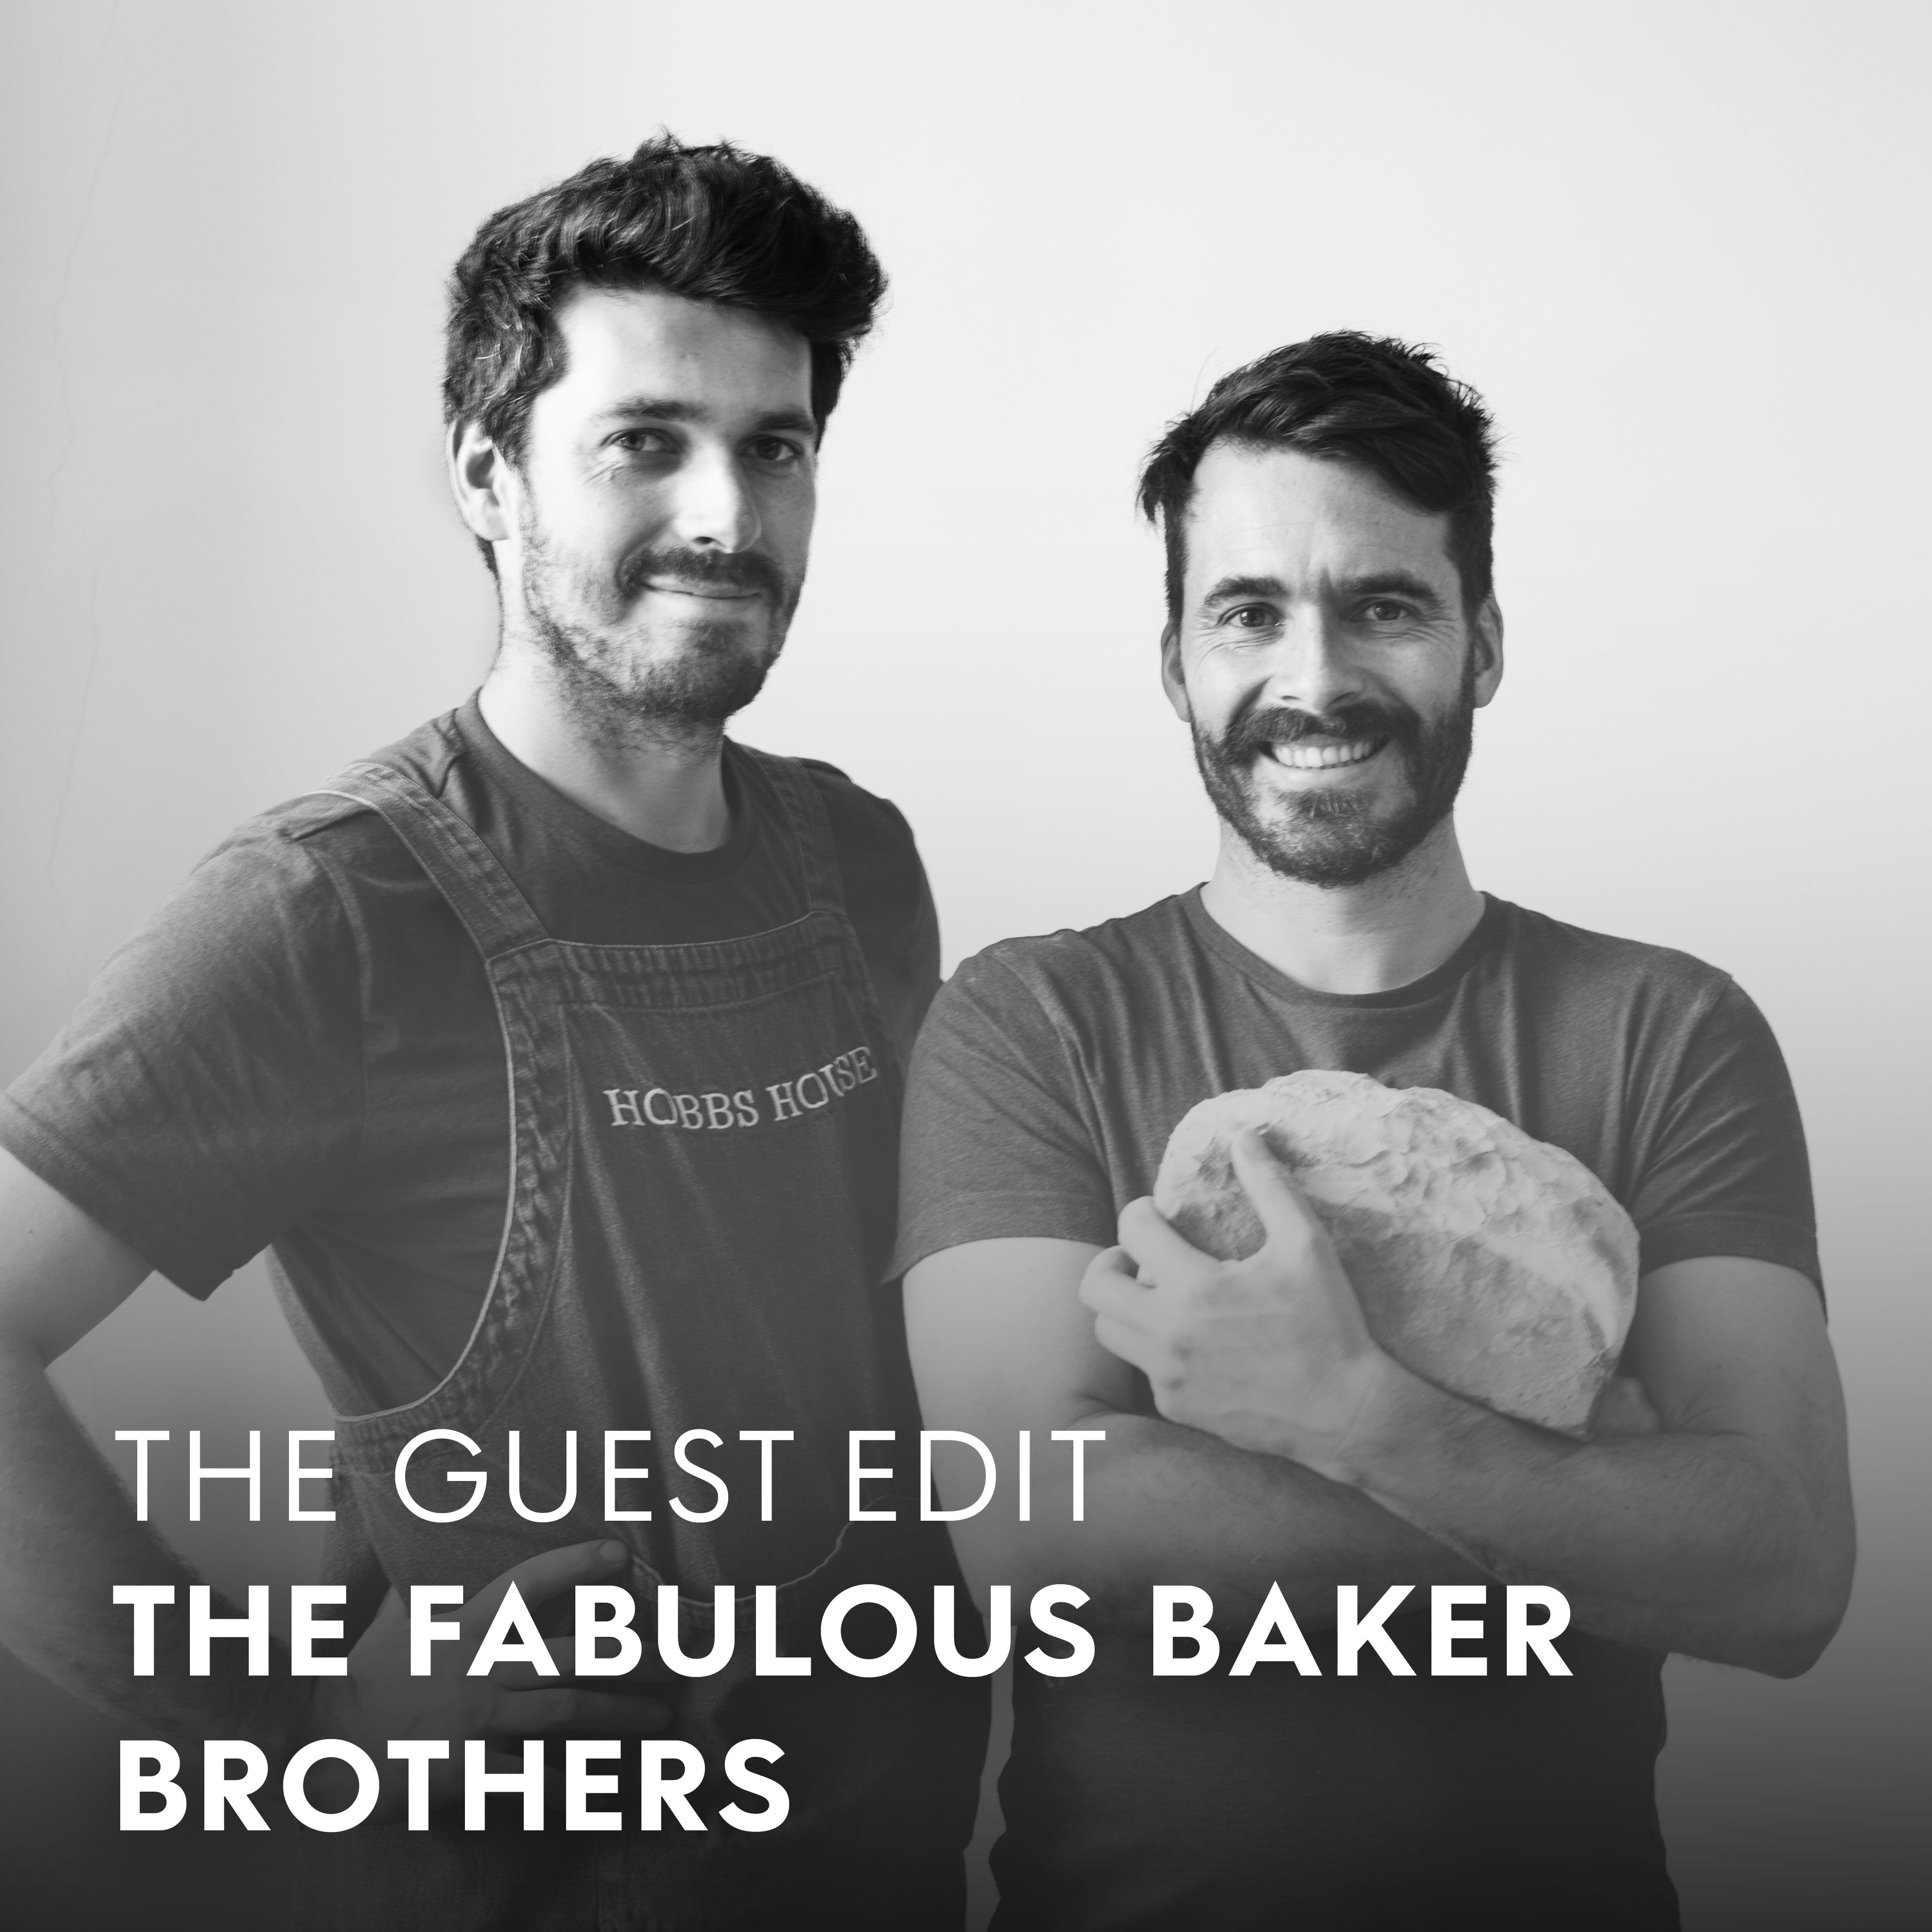 The Guest Edit The Fabulous Baker Brothers